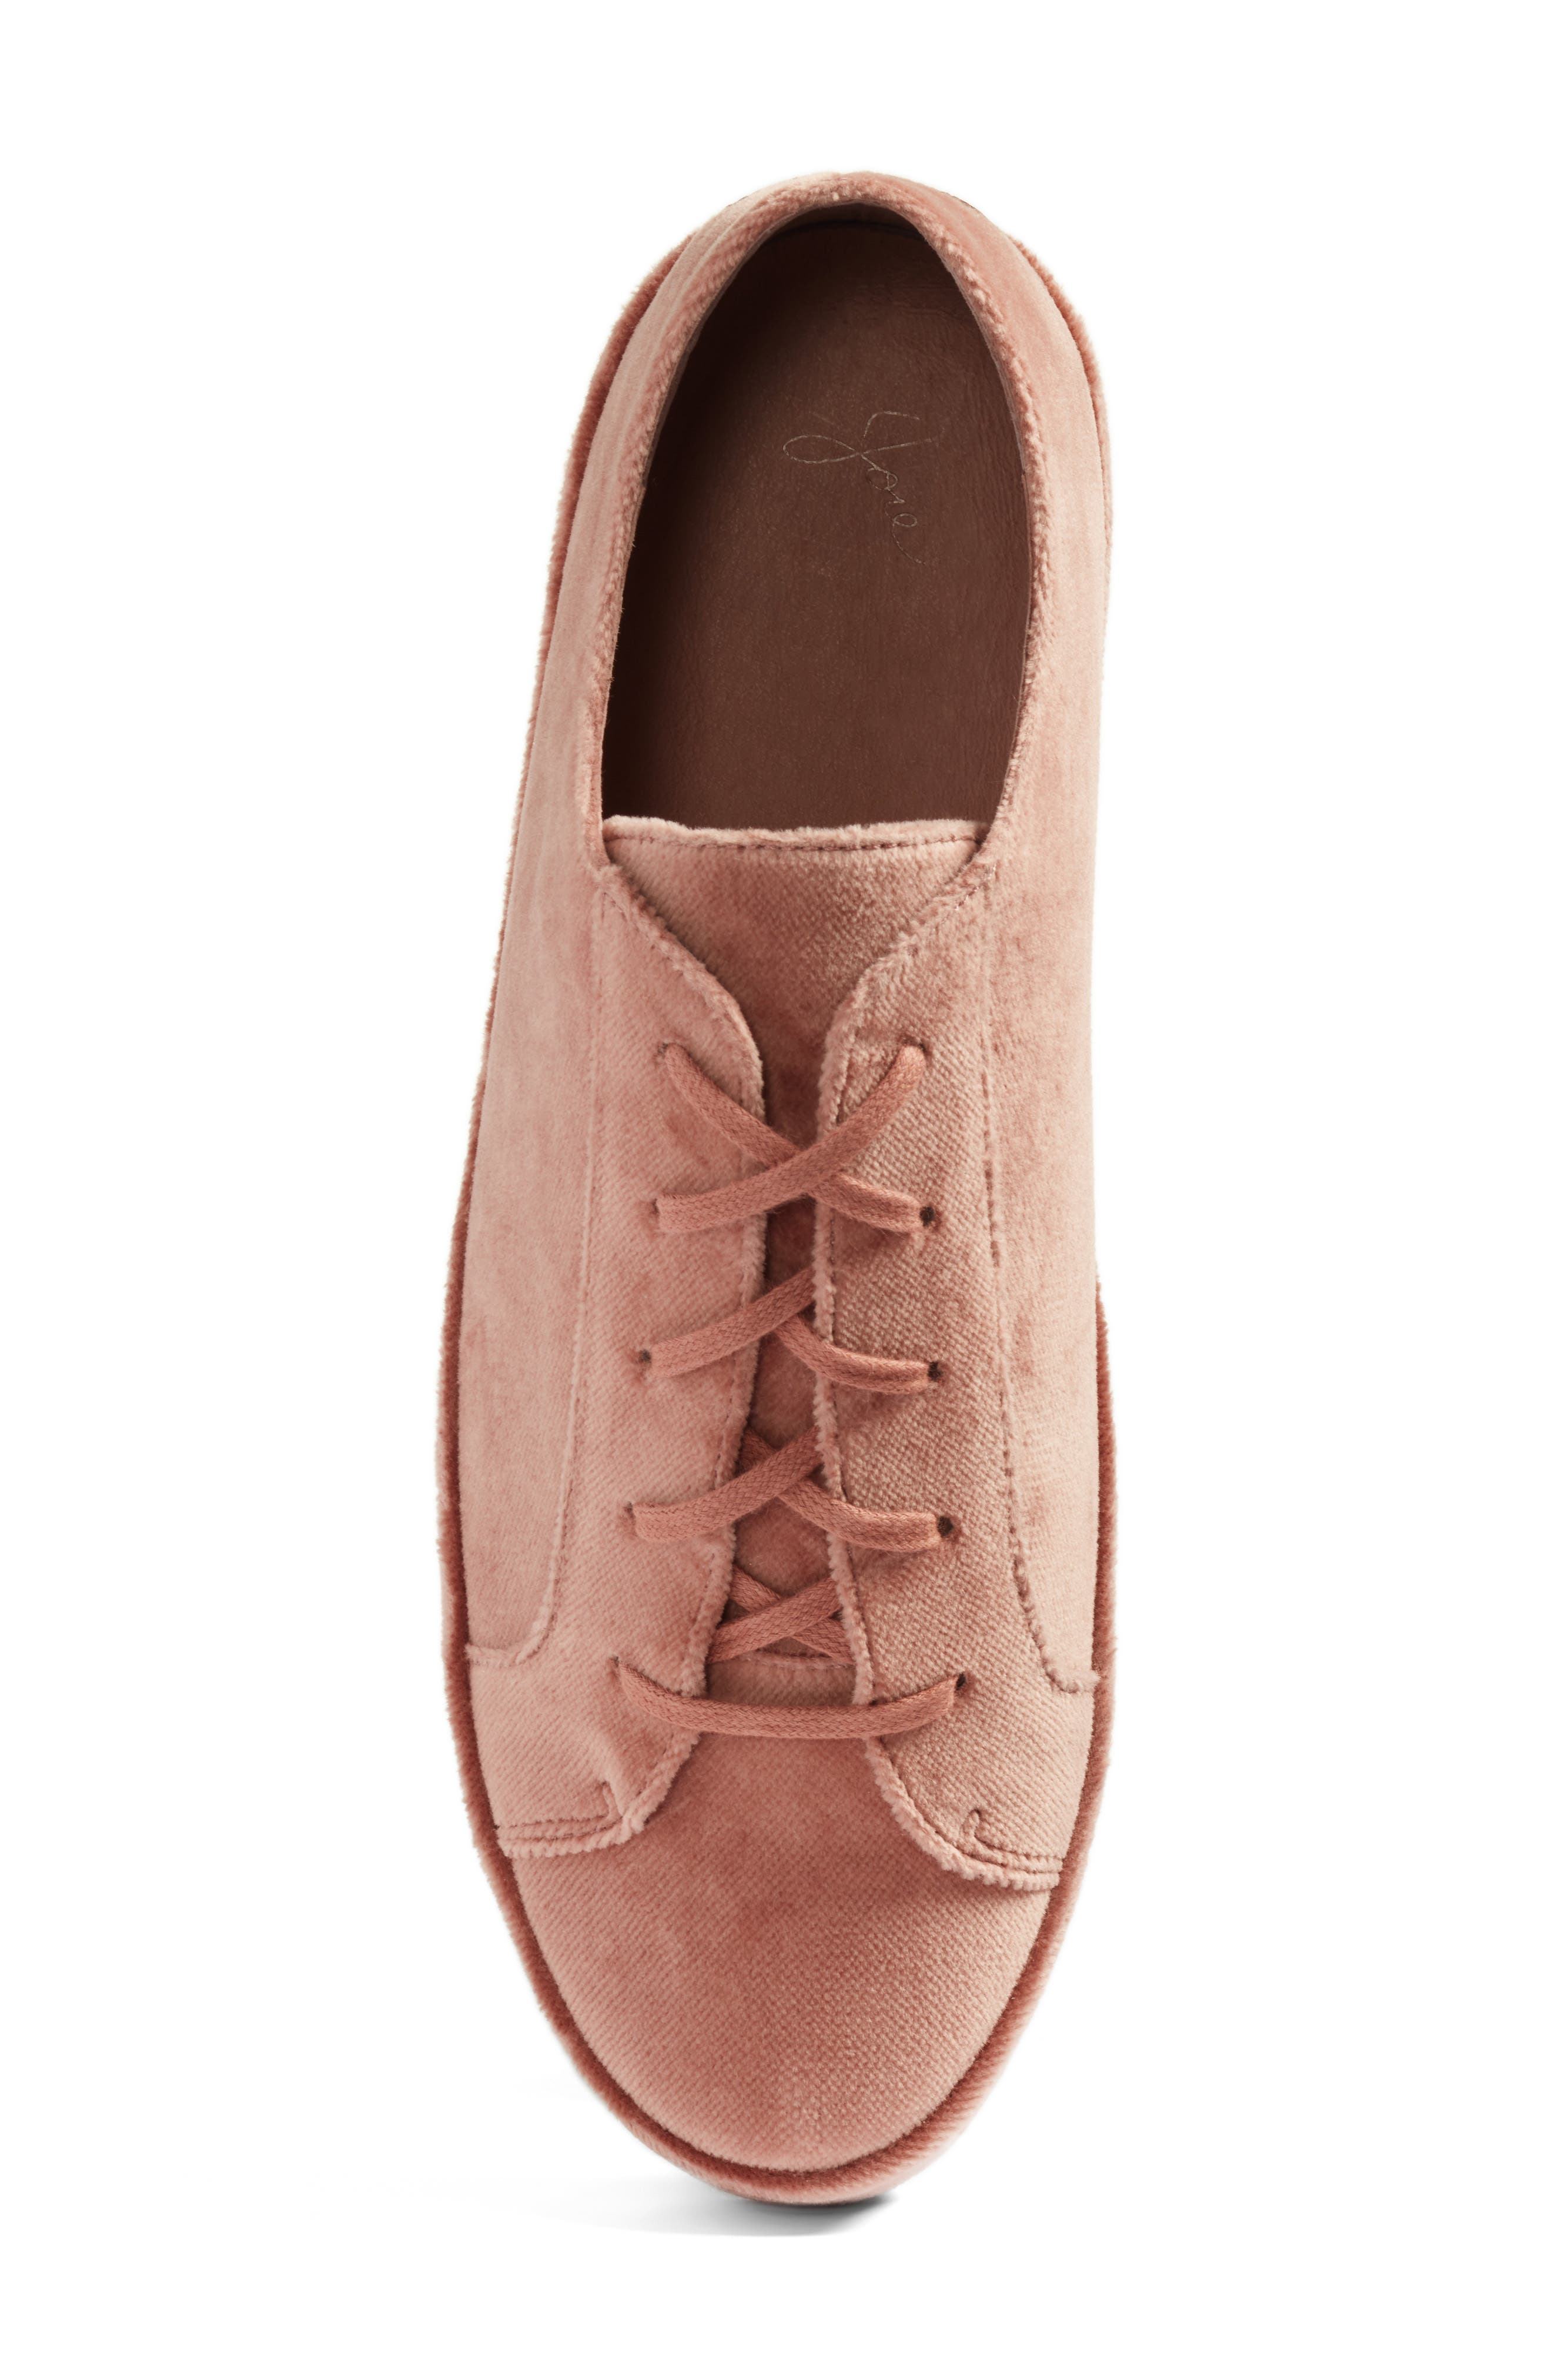 Daryl Low Top Sneaker,                             Alternate thumbnail 5, color,                             Light Mauve